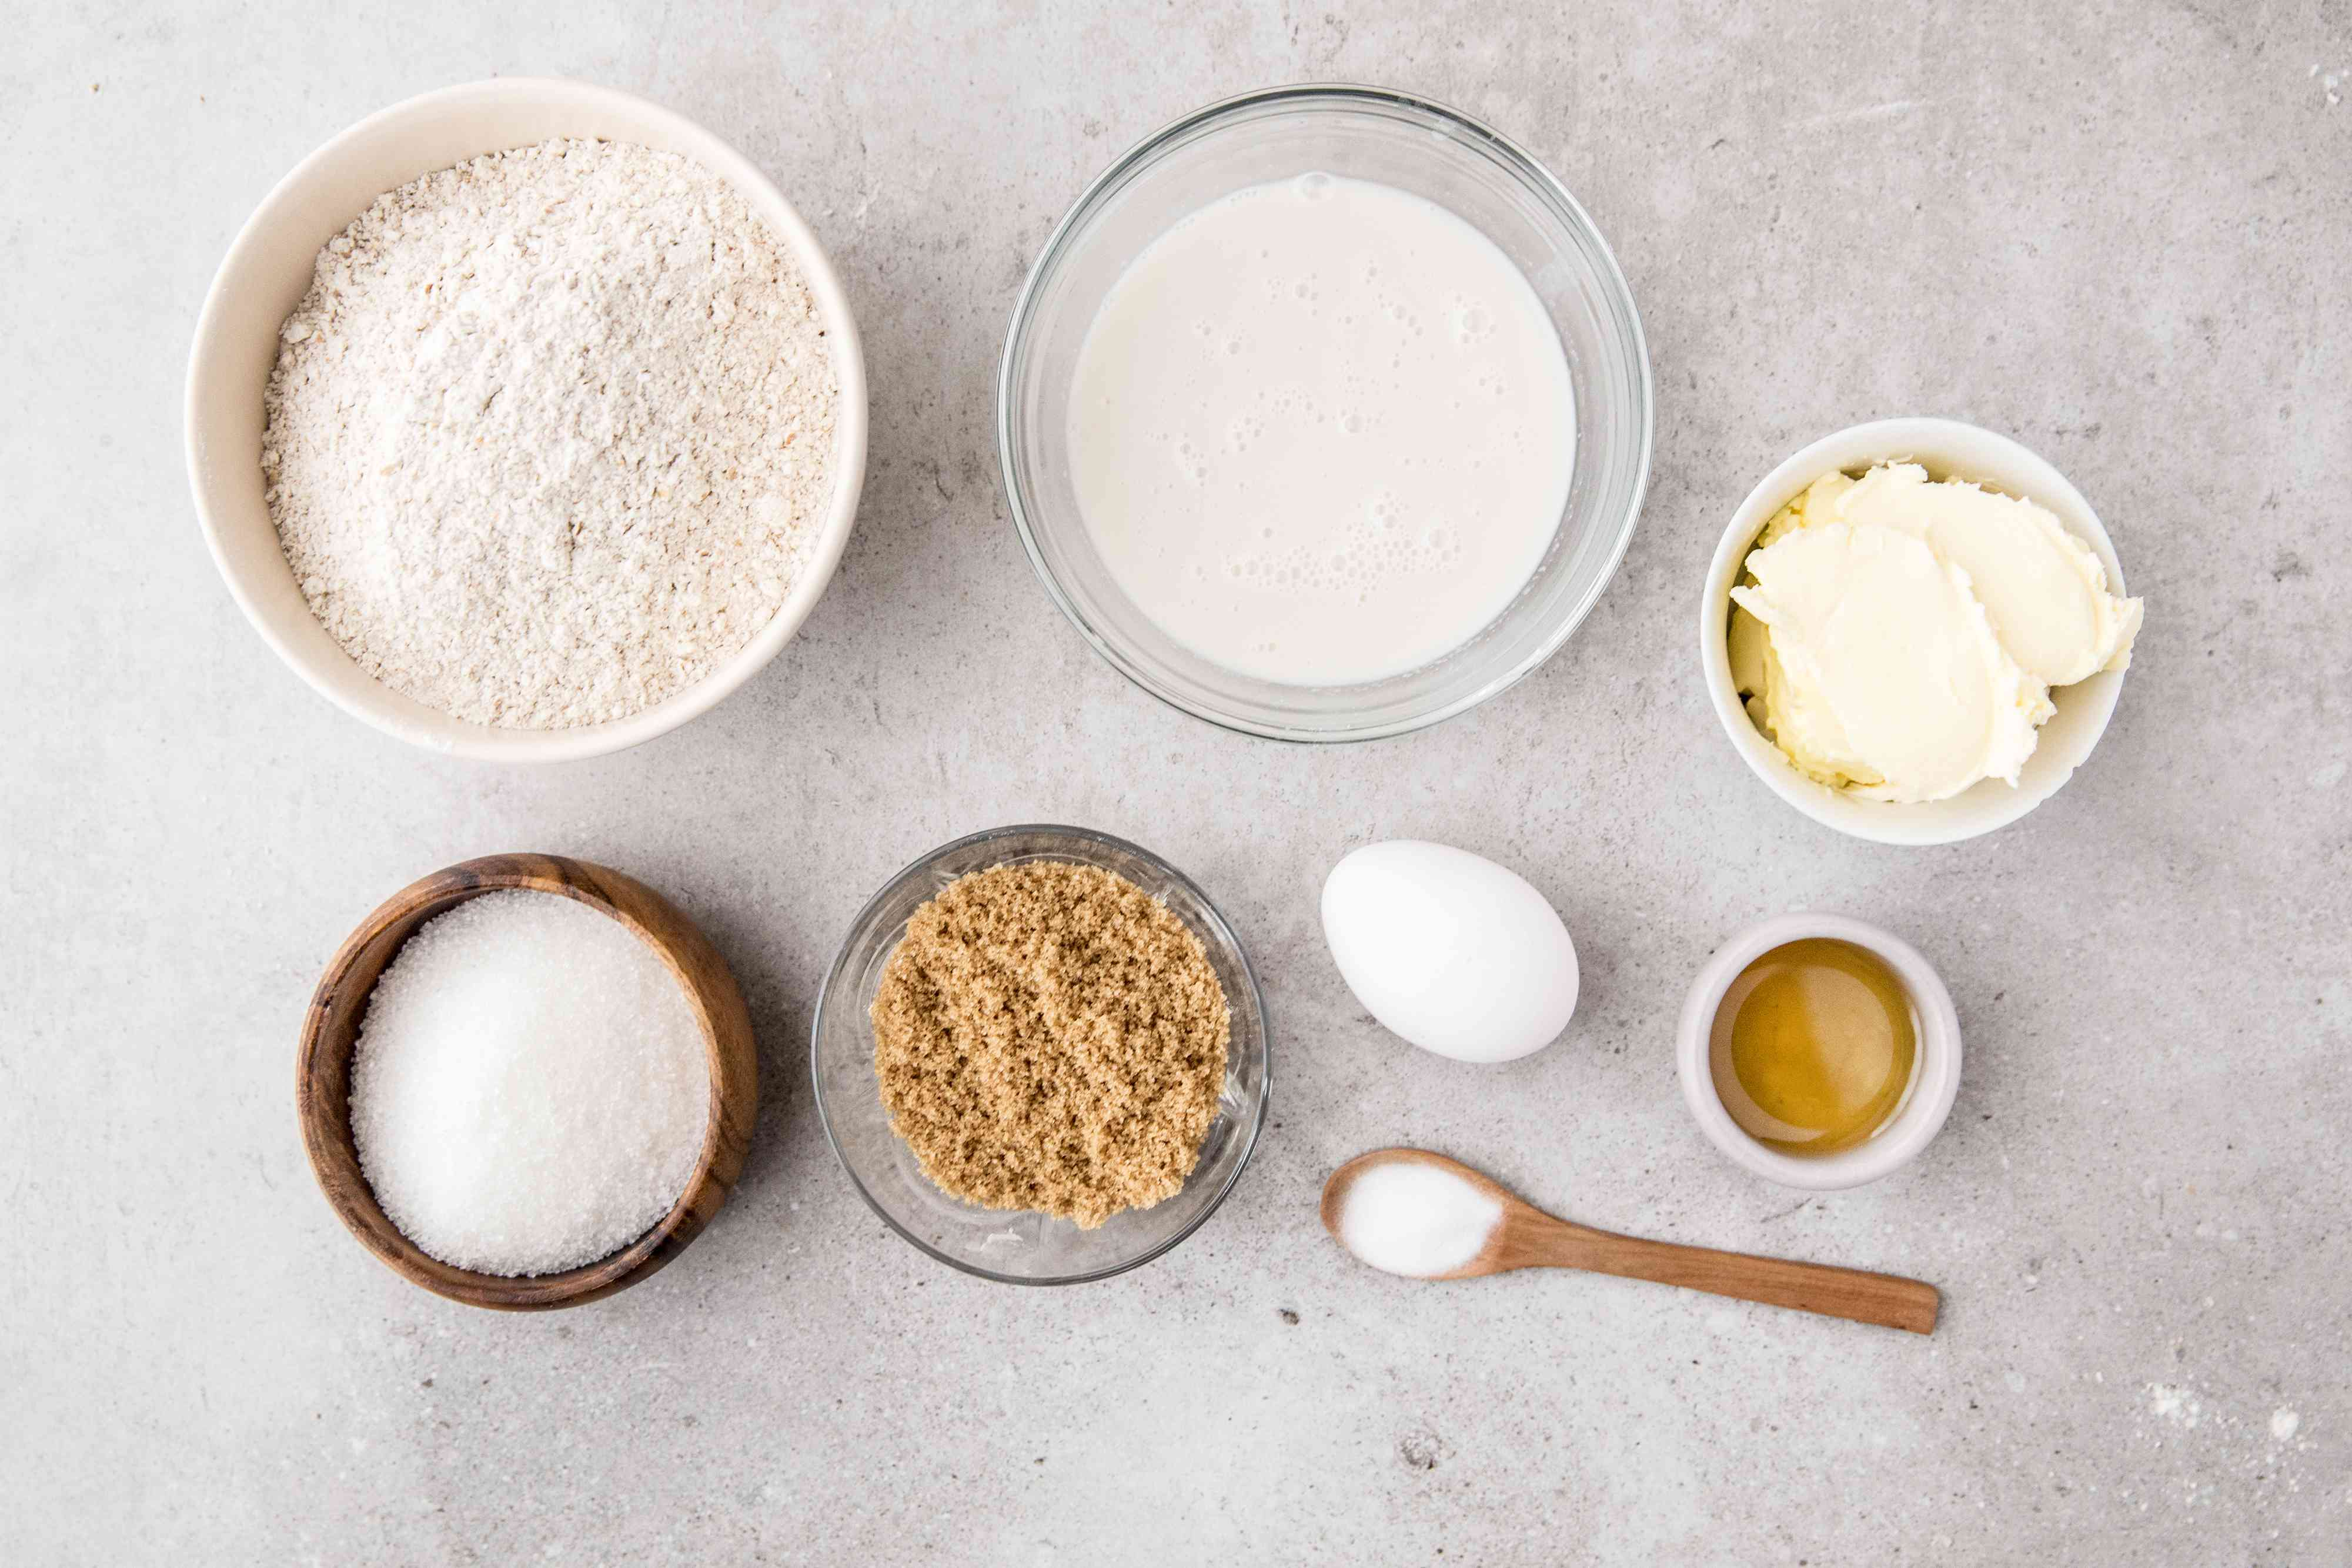 Ingredients for basic whole wheat muffins